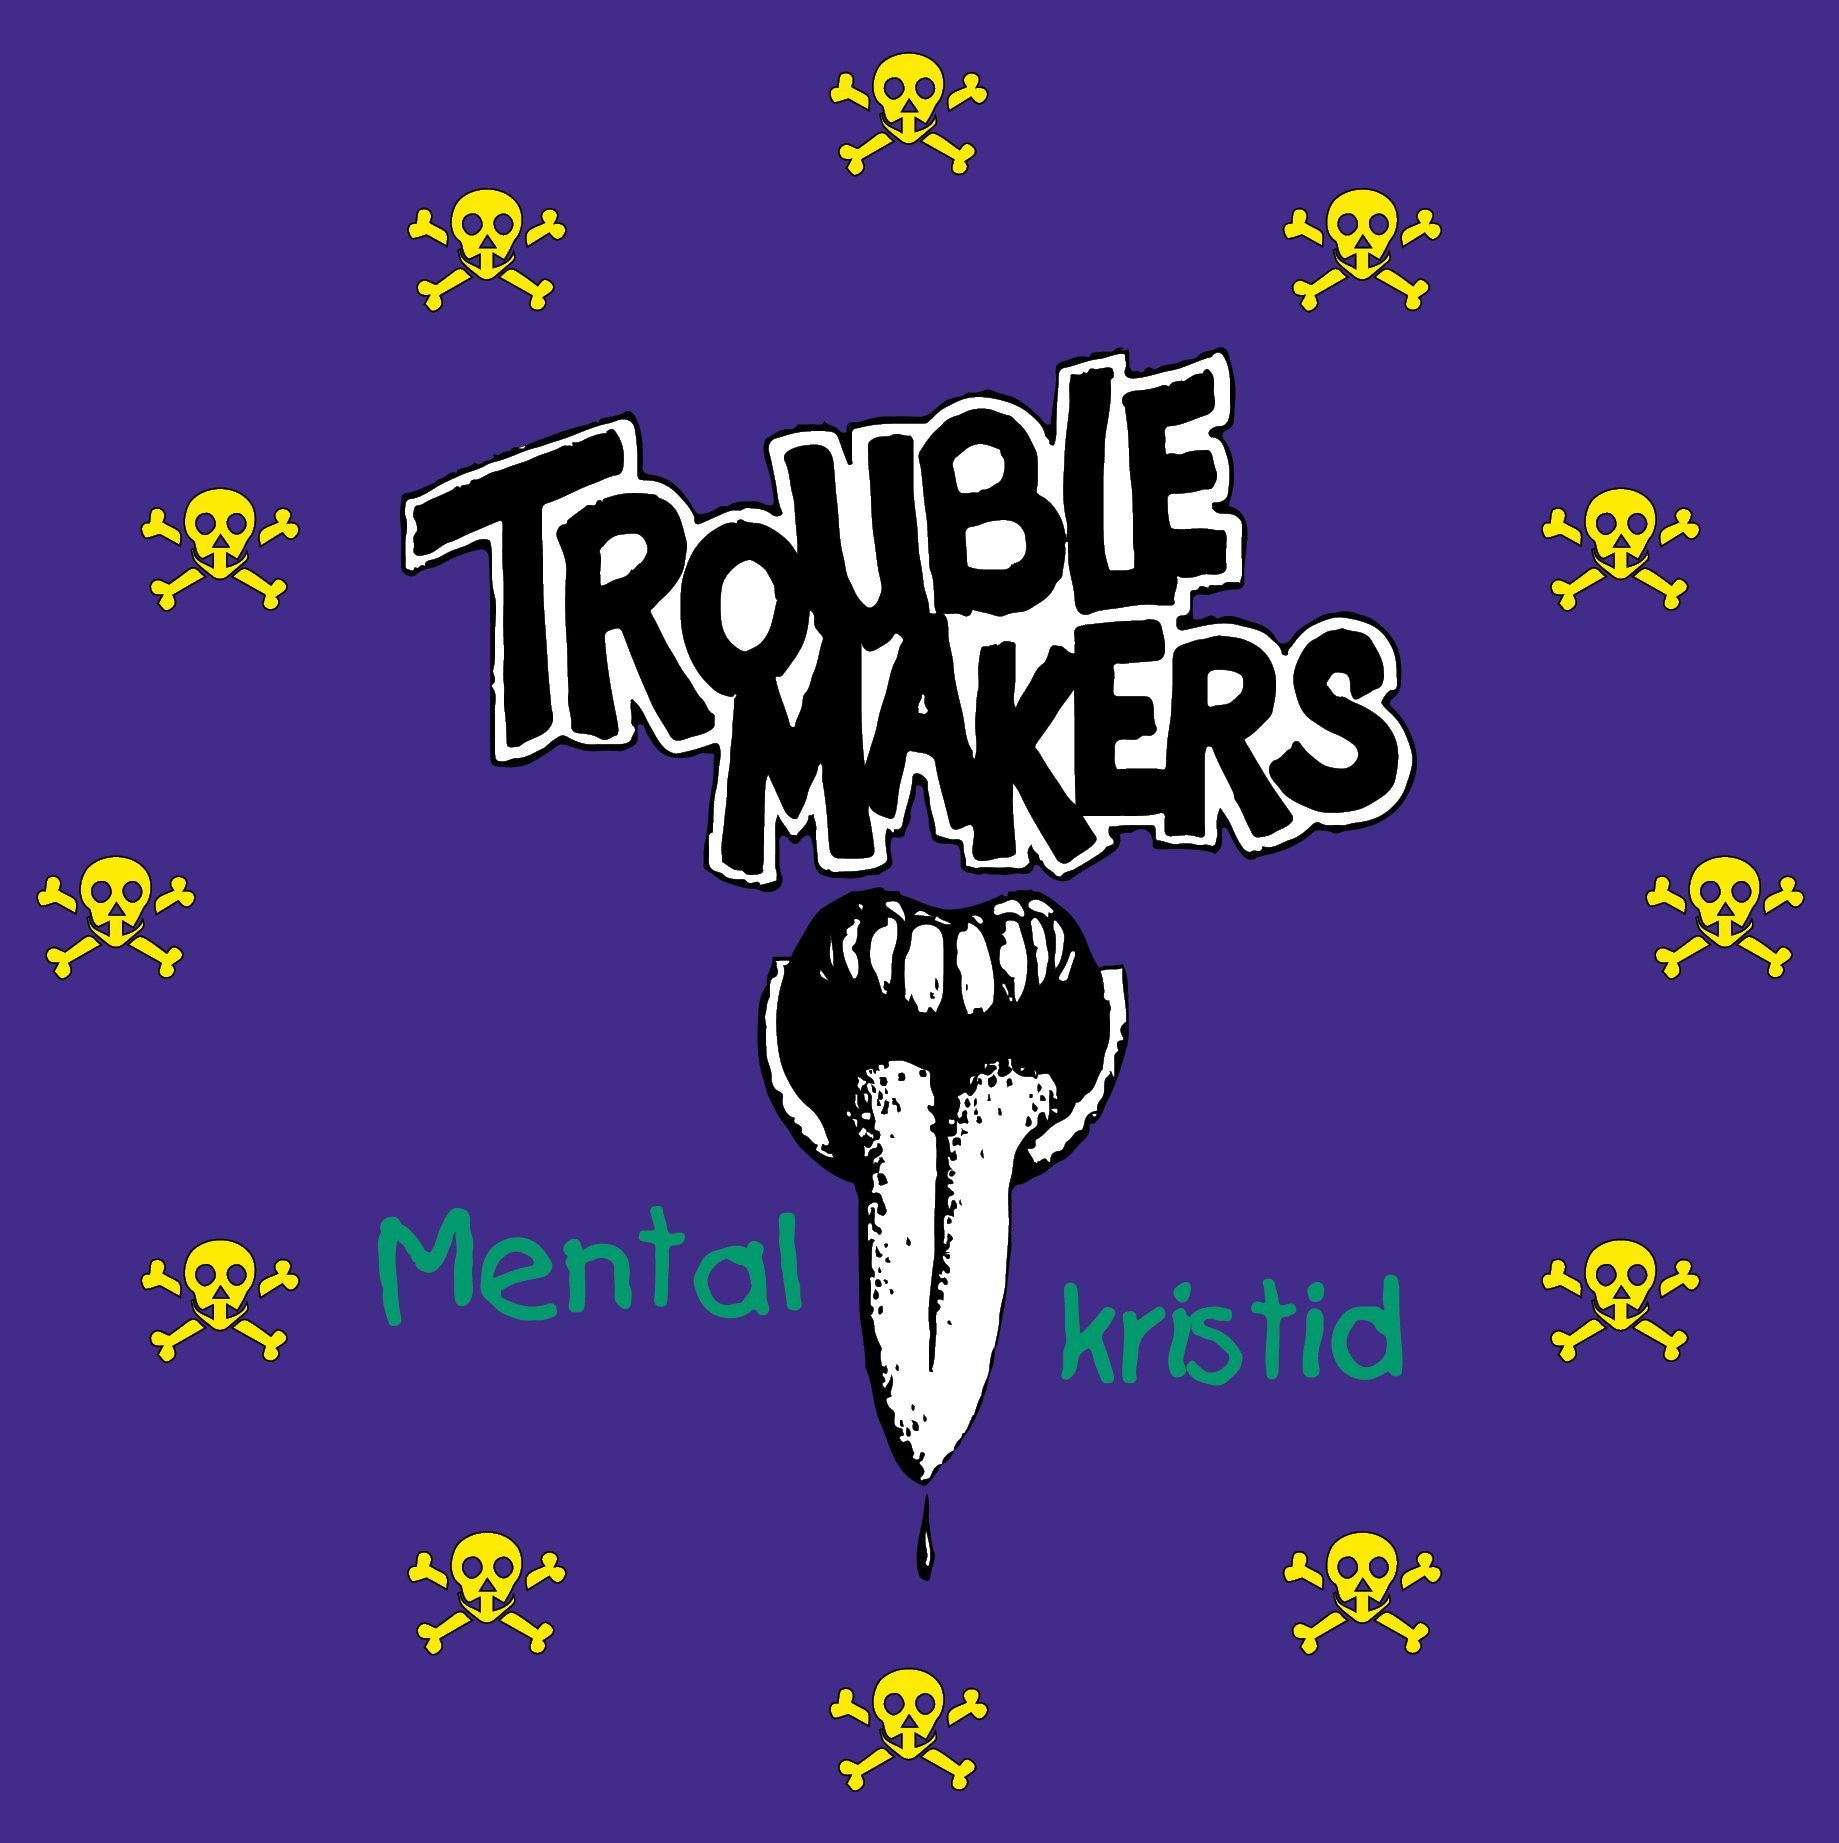 Troublemakers – Mental kristid